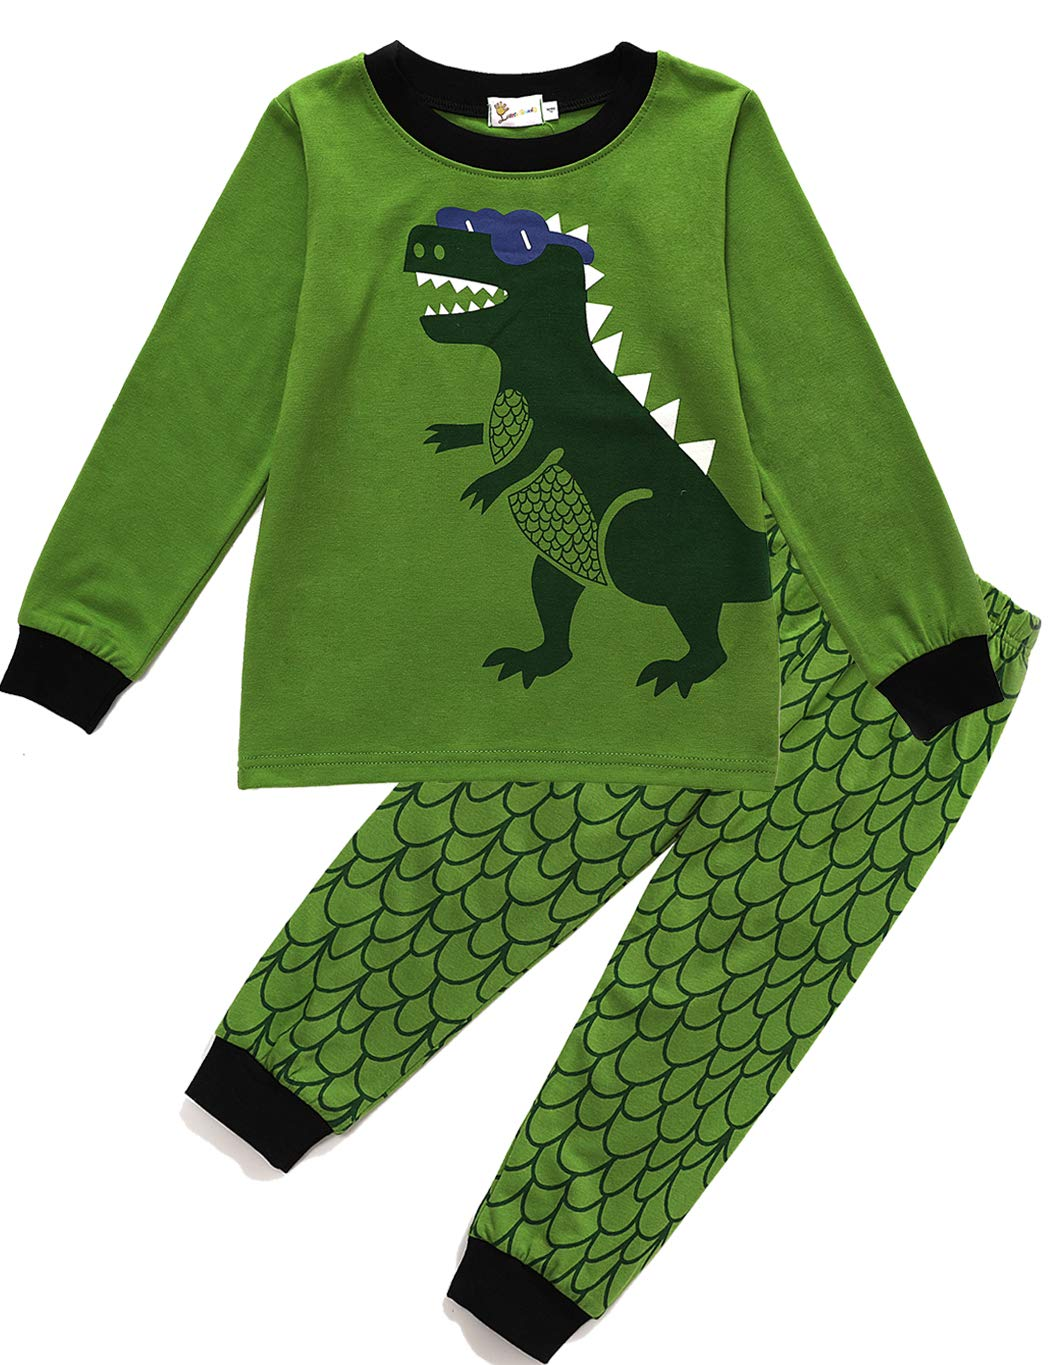 DDSOL Kids Pajamas for Boys Long Sleeve Dinosaur Pjs Set 2 Piece Cotton Sleepwear Toddler Clothes Outfit Size 2T 3T 4T 5T 6T